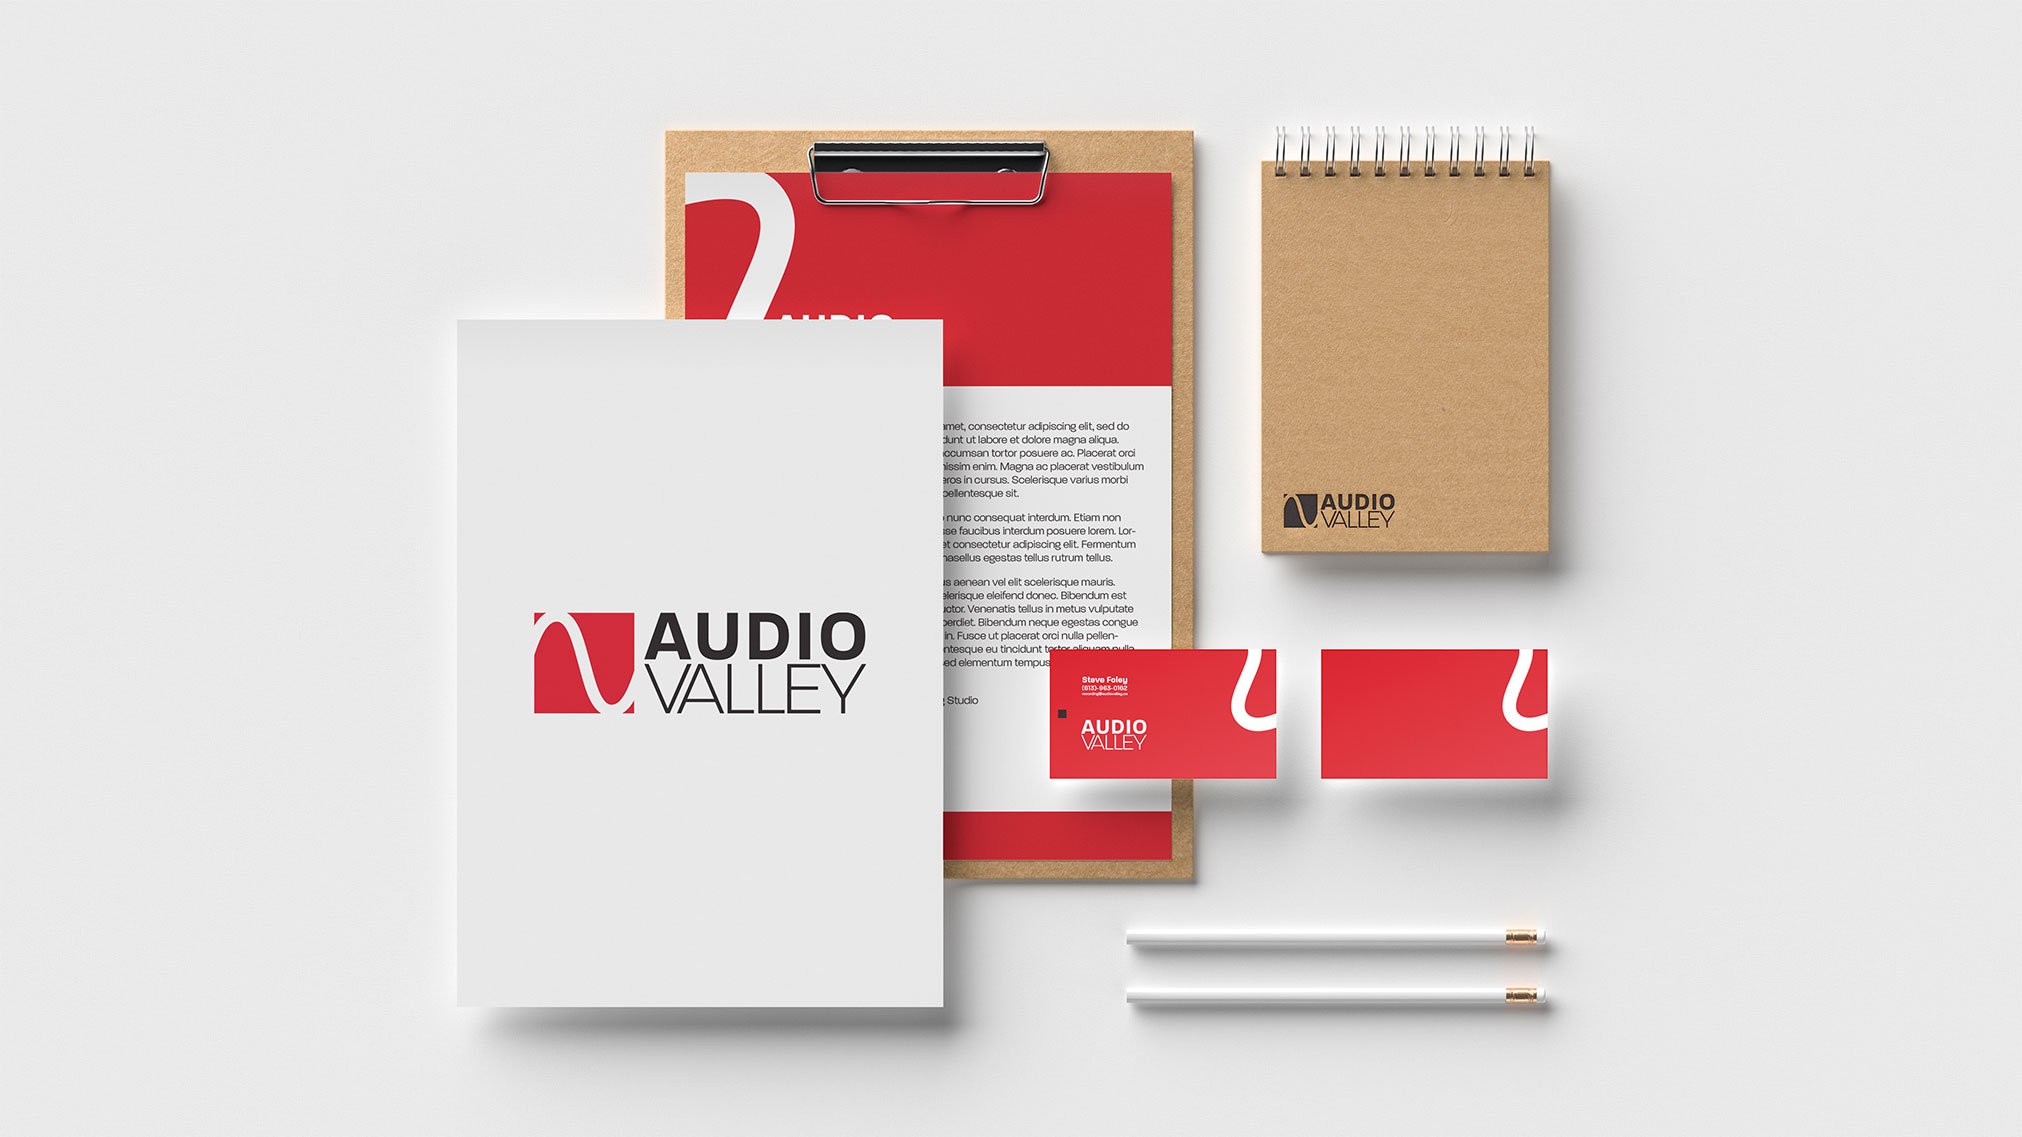 This re-brand consisted of a totally new and fresh design, from logo, to website, and lots more.